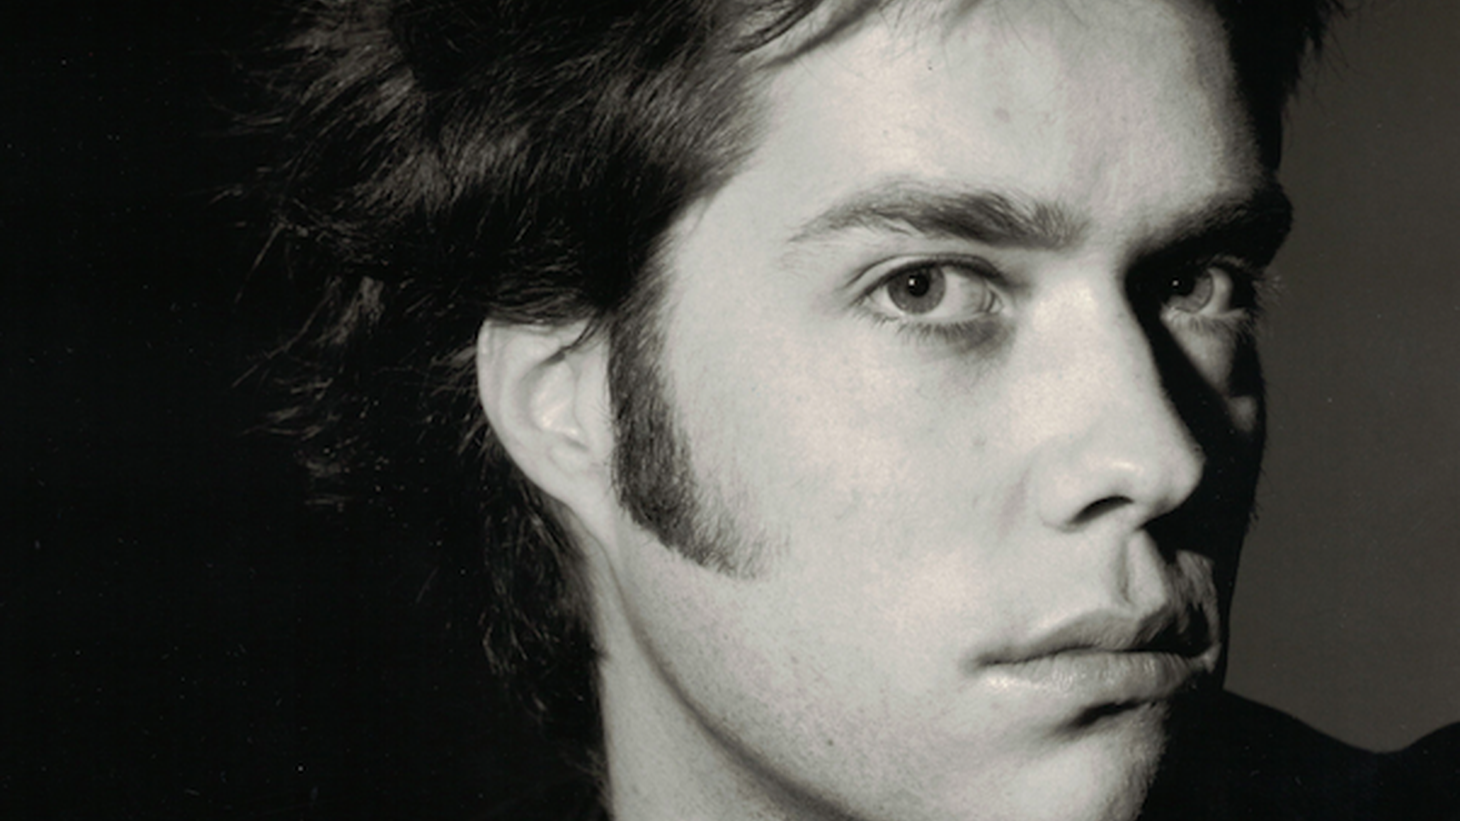 Rufus Wainwright is one of the great male vocalists, composers, and songwriters of his generation.